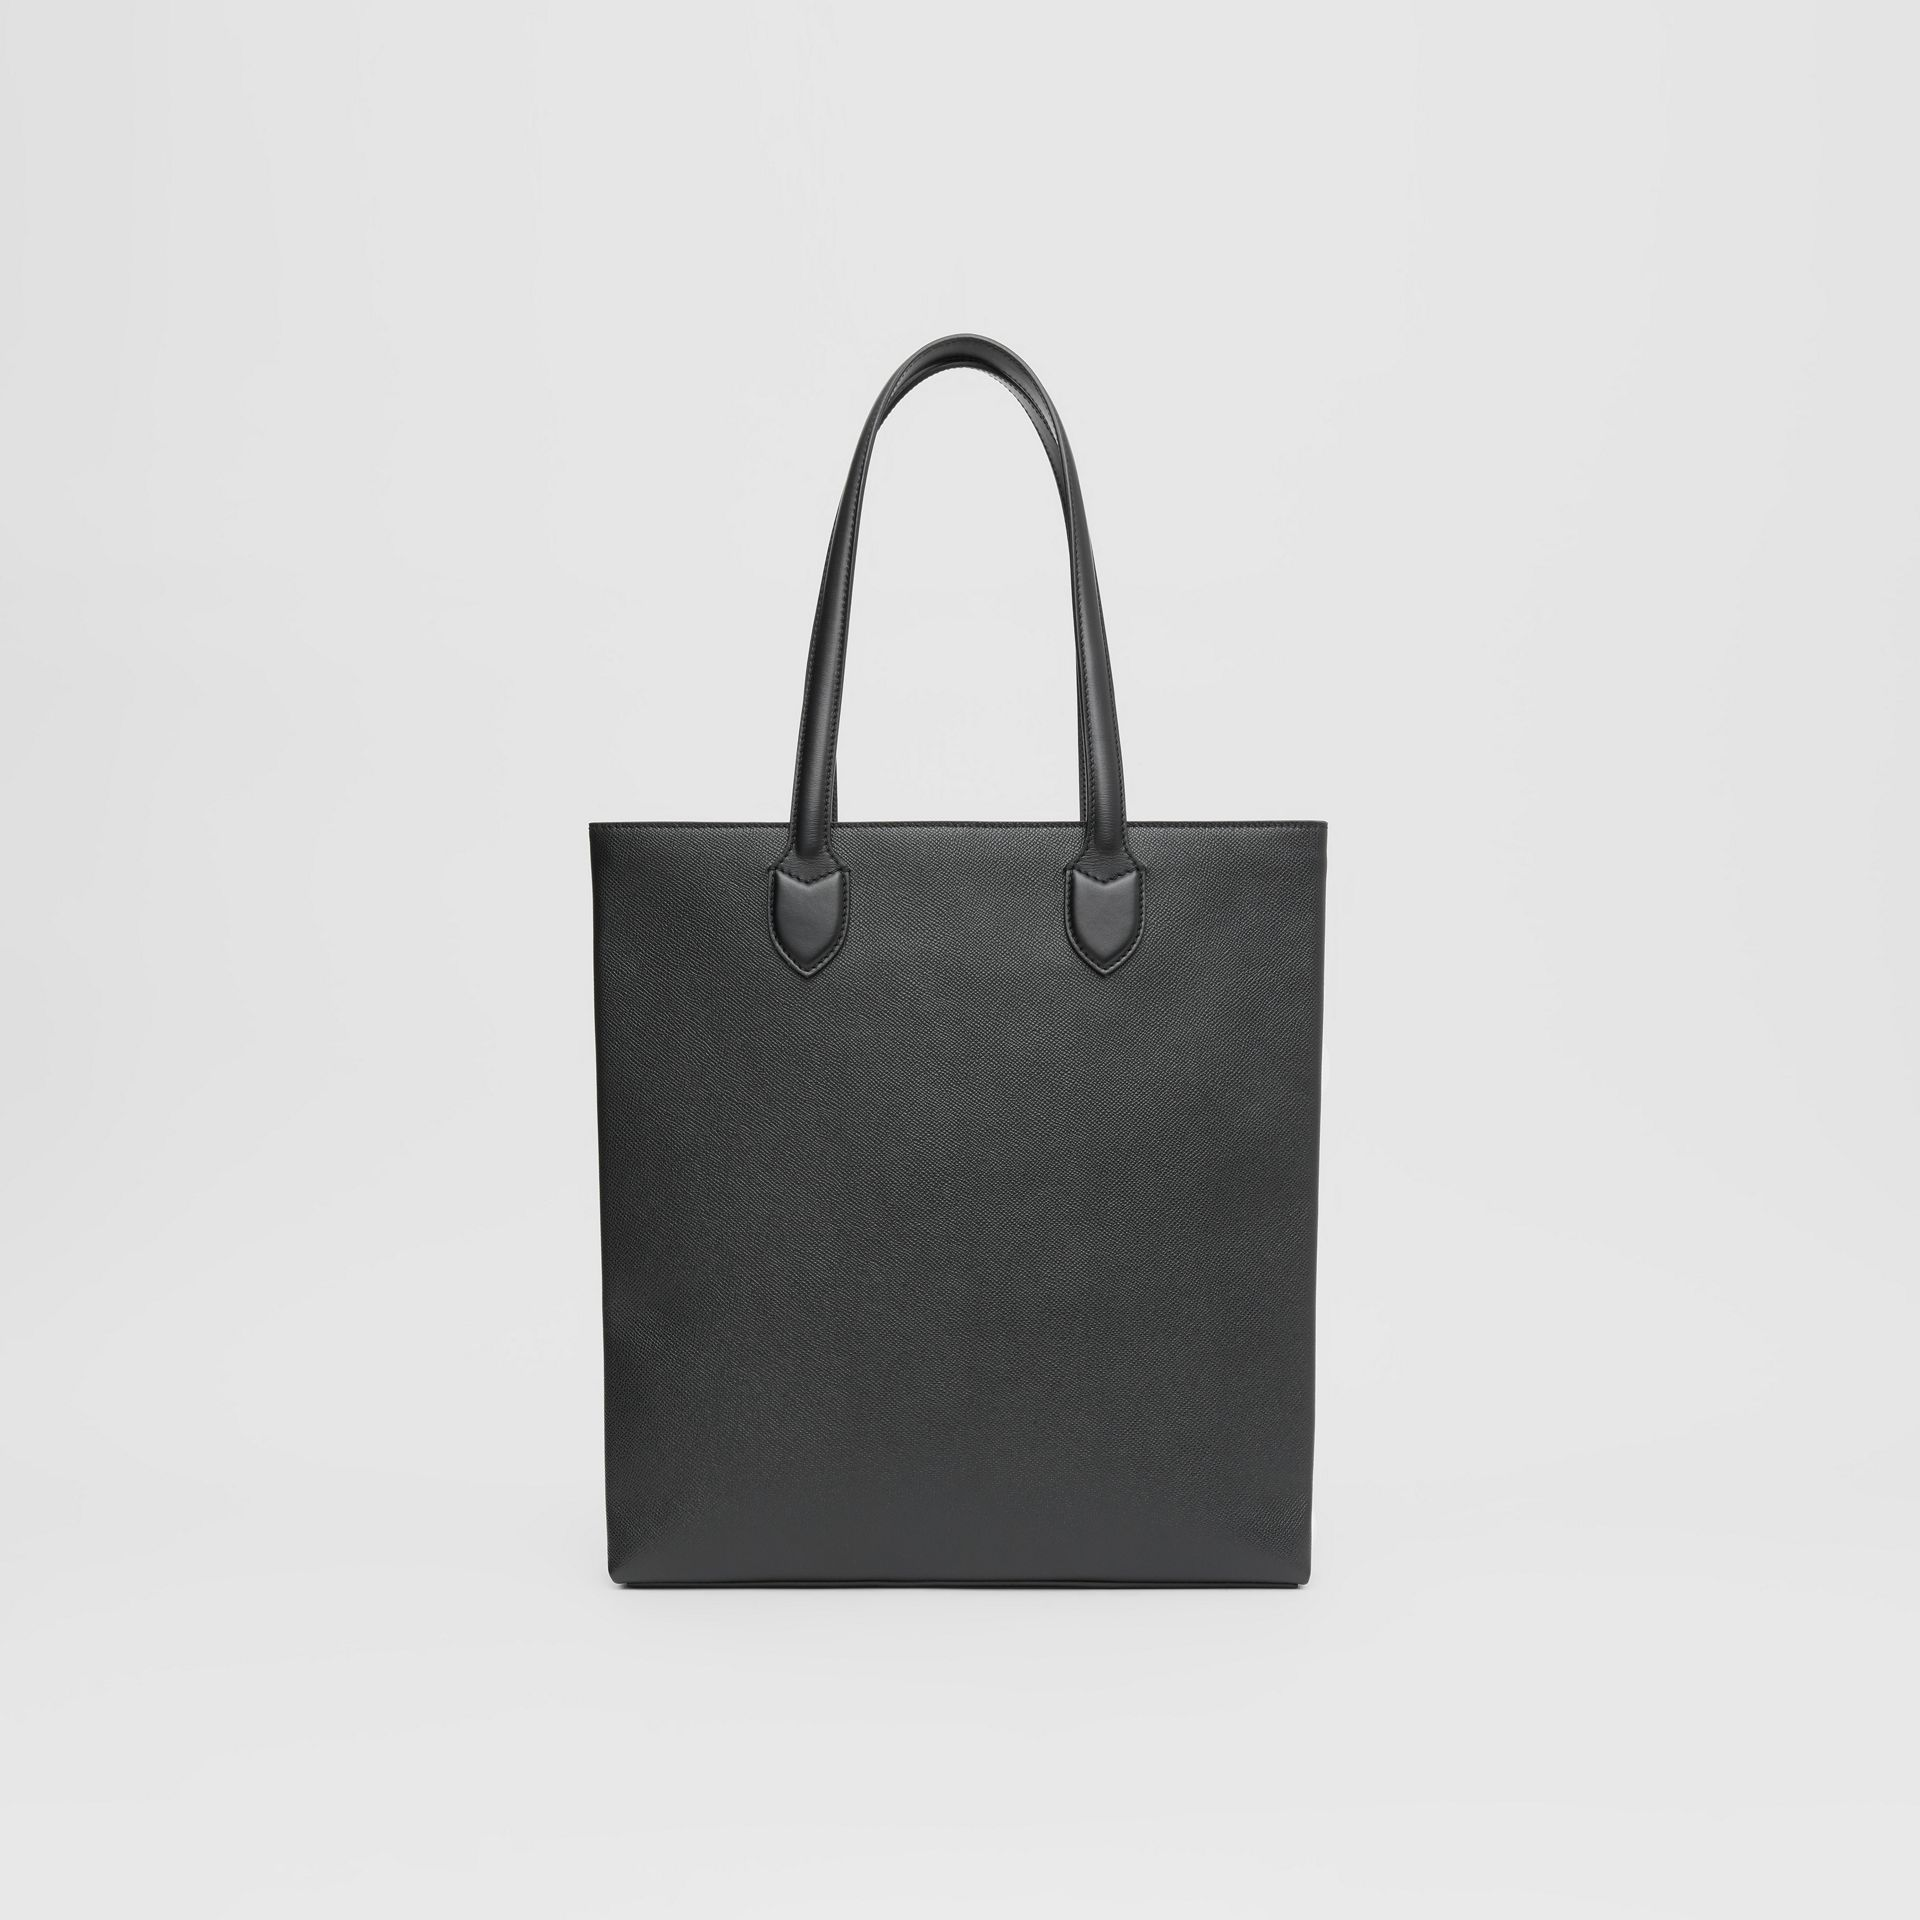 Medium Grainy Leather Tote in Black - Men | Burberry - gallery image 7